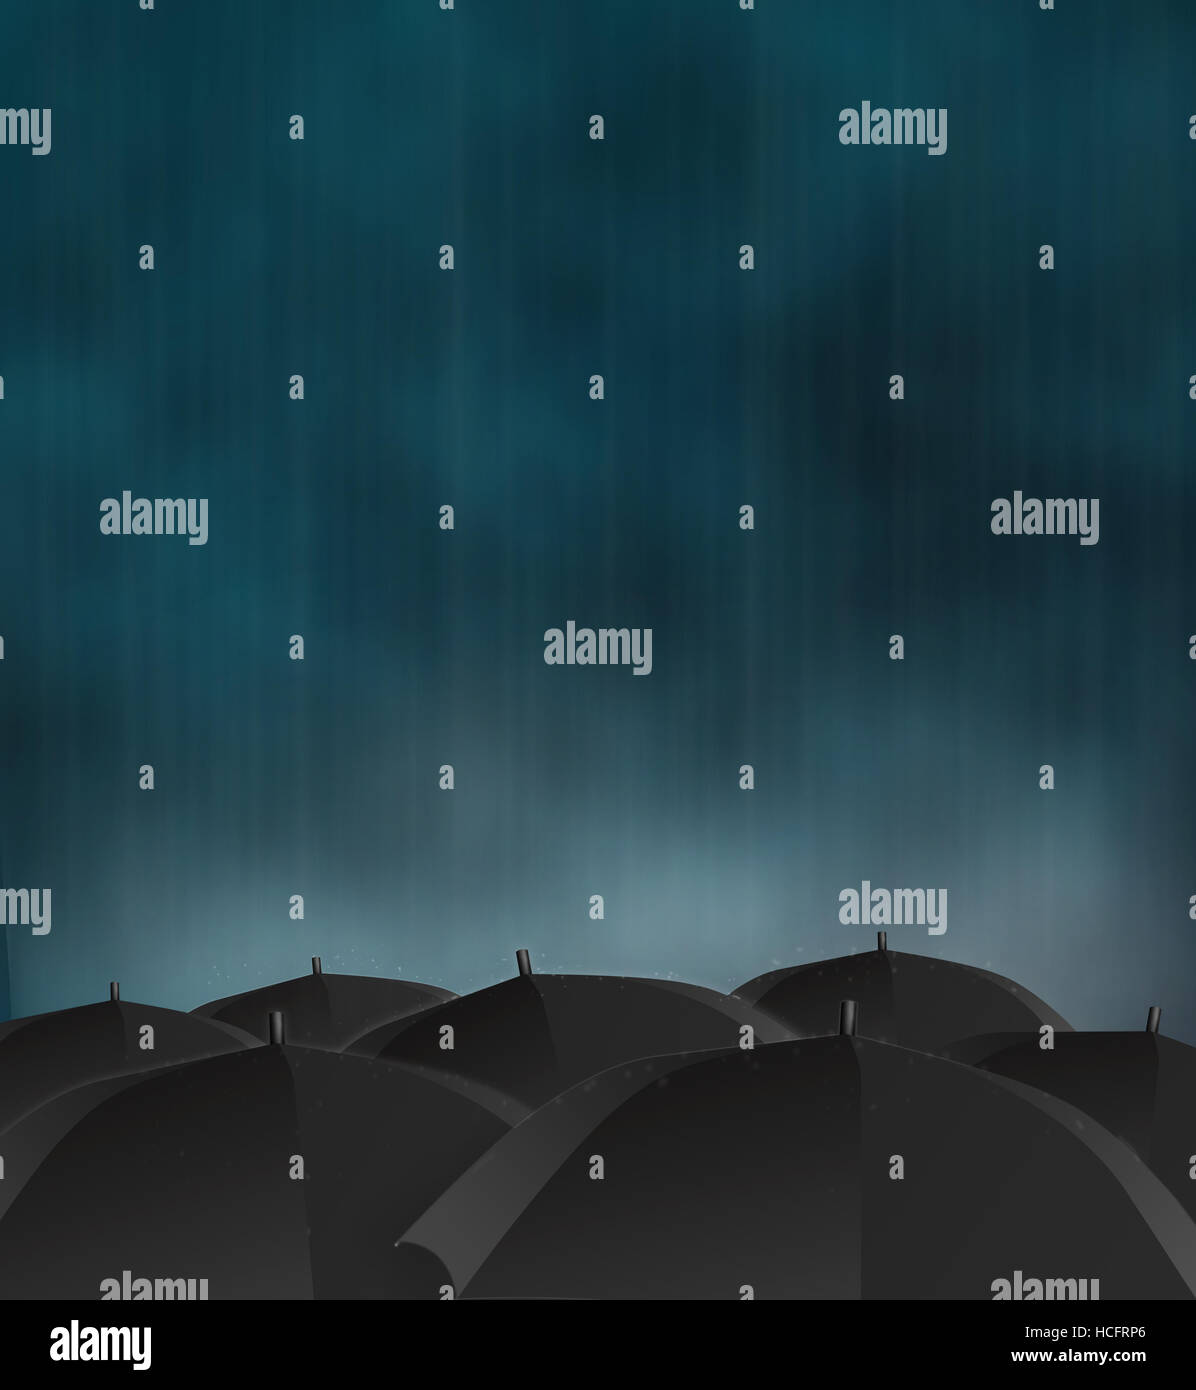 gloomy picture of dark rainy sky and black umbrellas - Stock Image